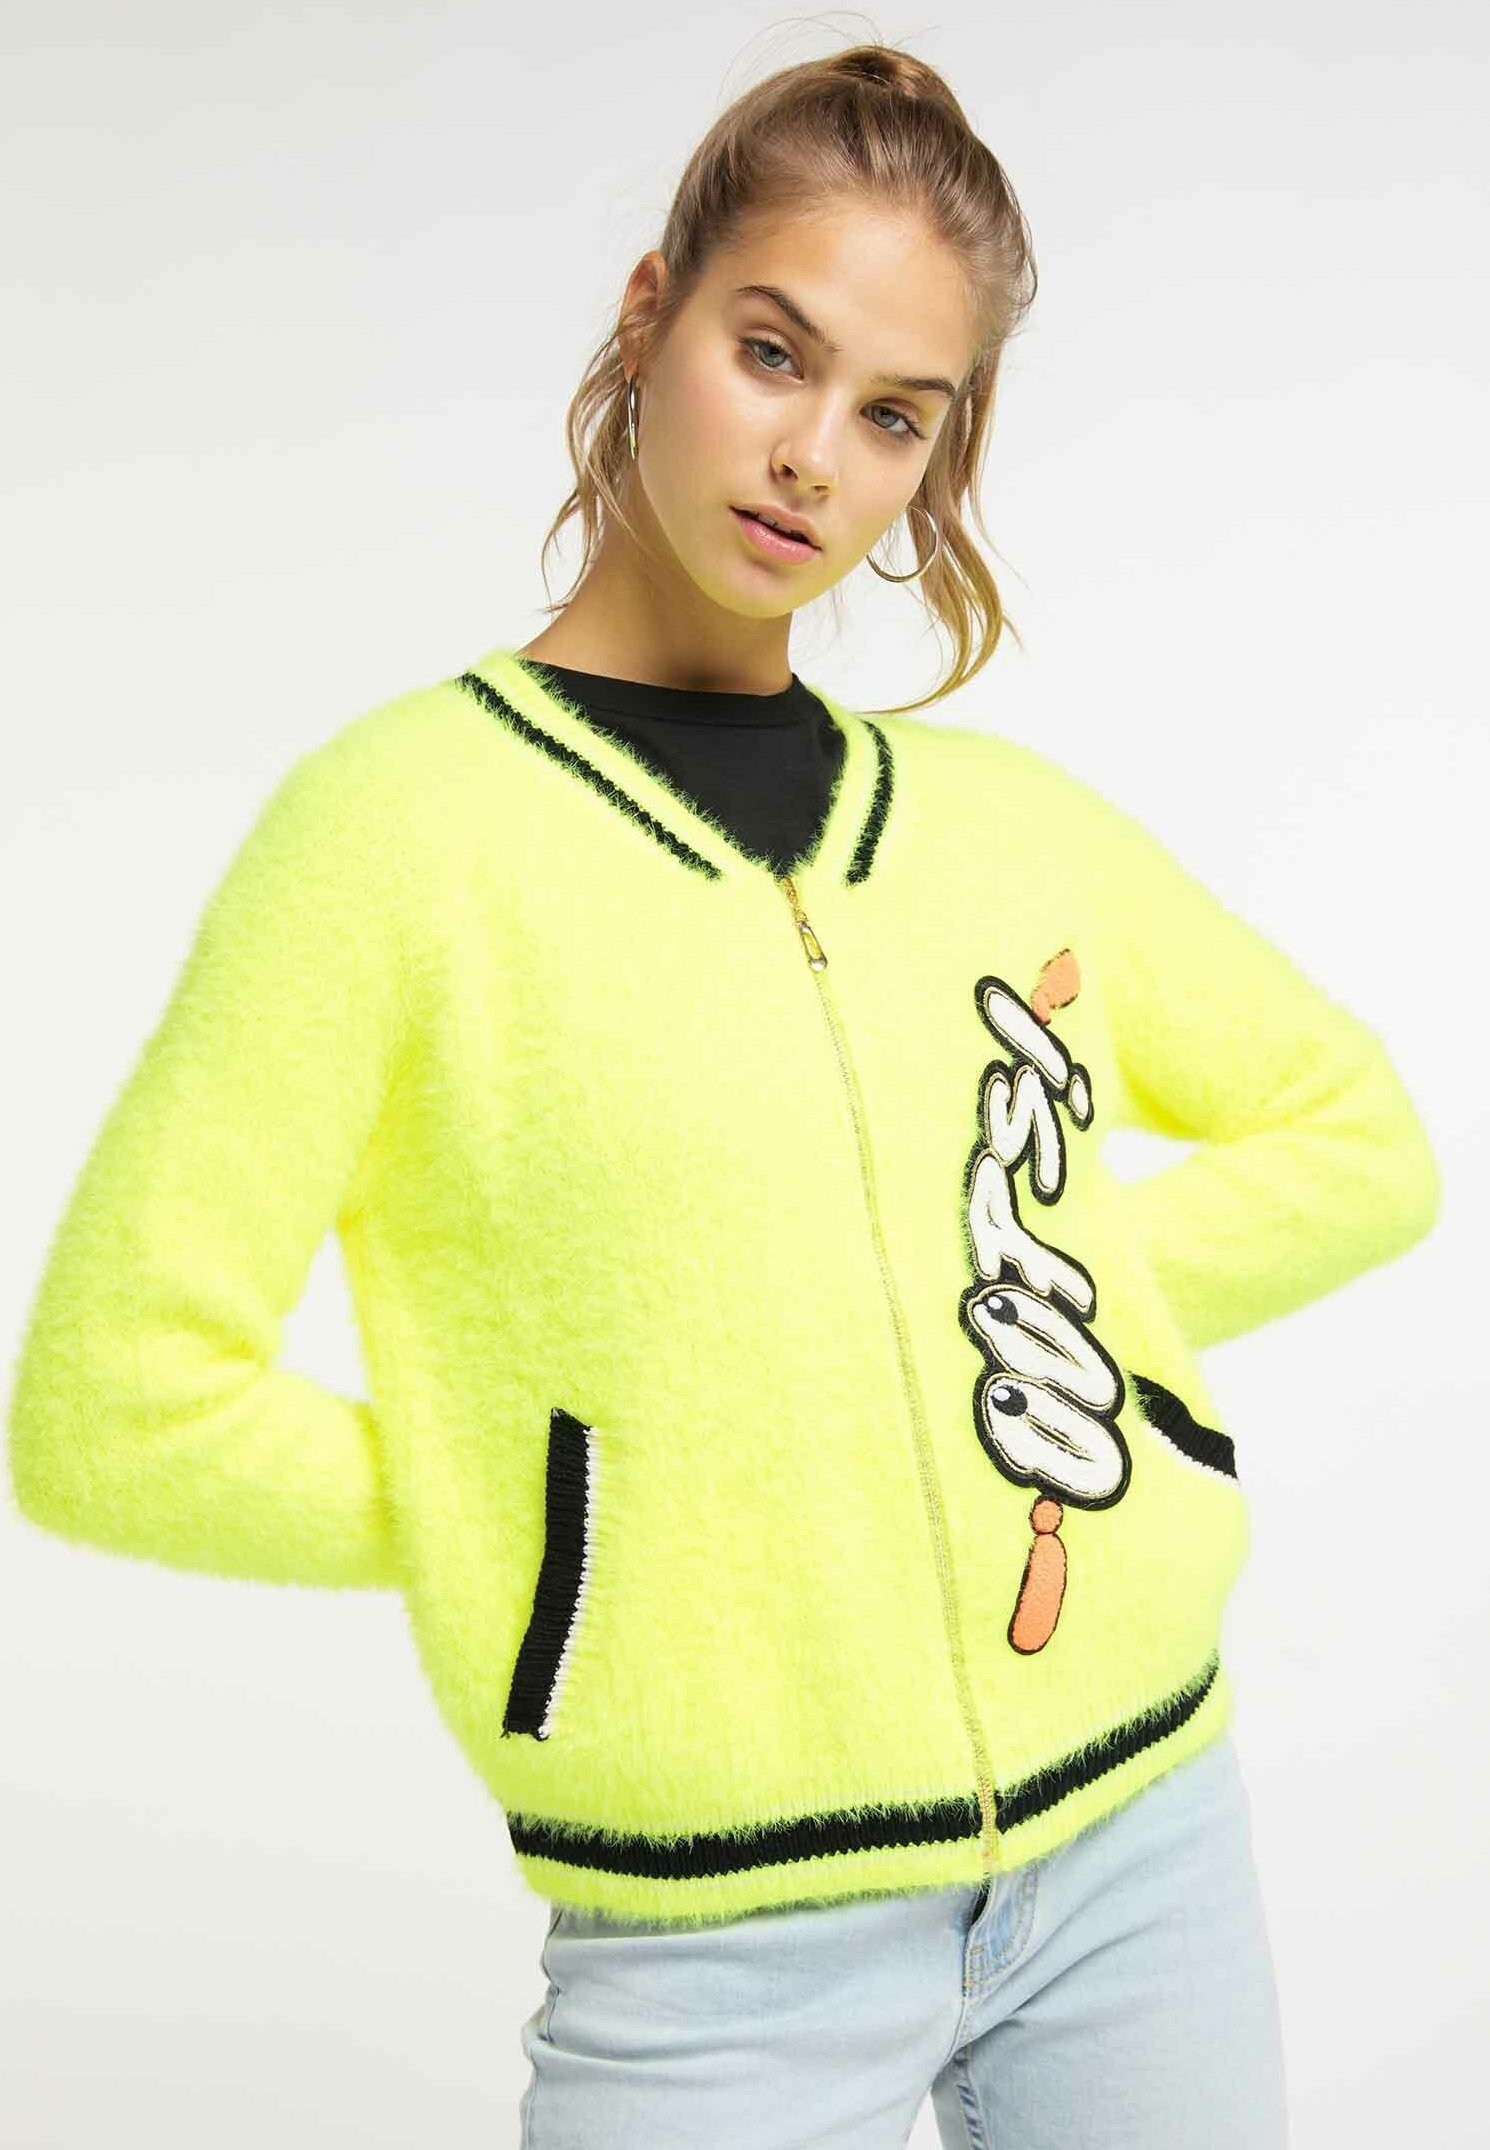 Latest Women's Clothing myMo Cardigan neon yellow M92bBCNNj